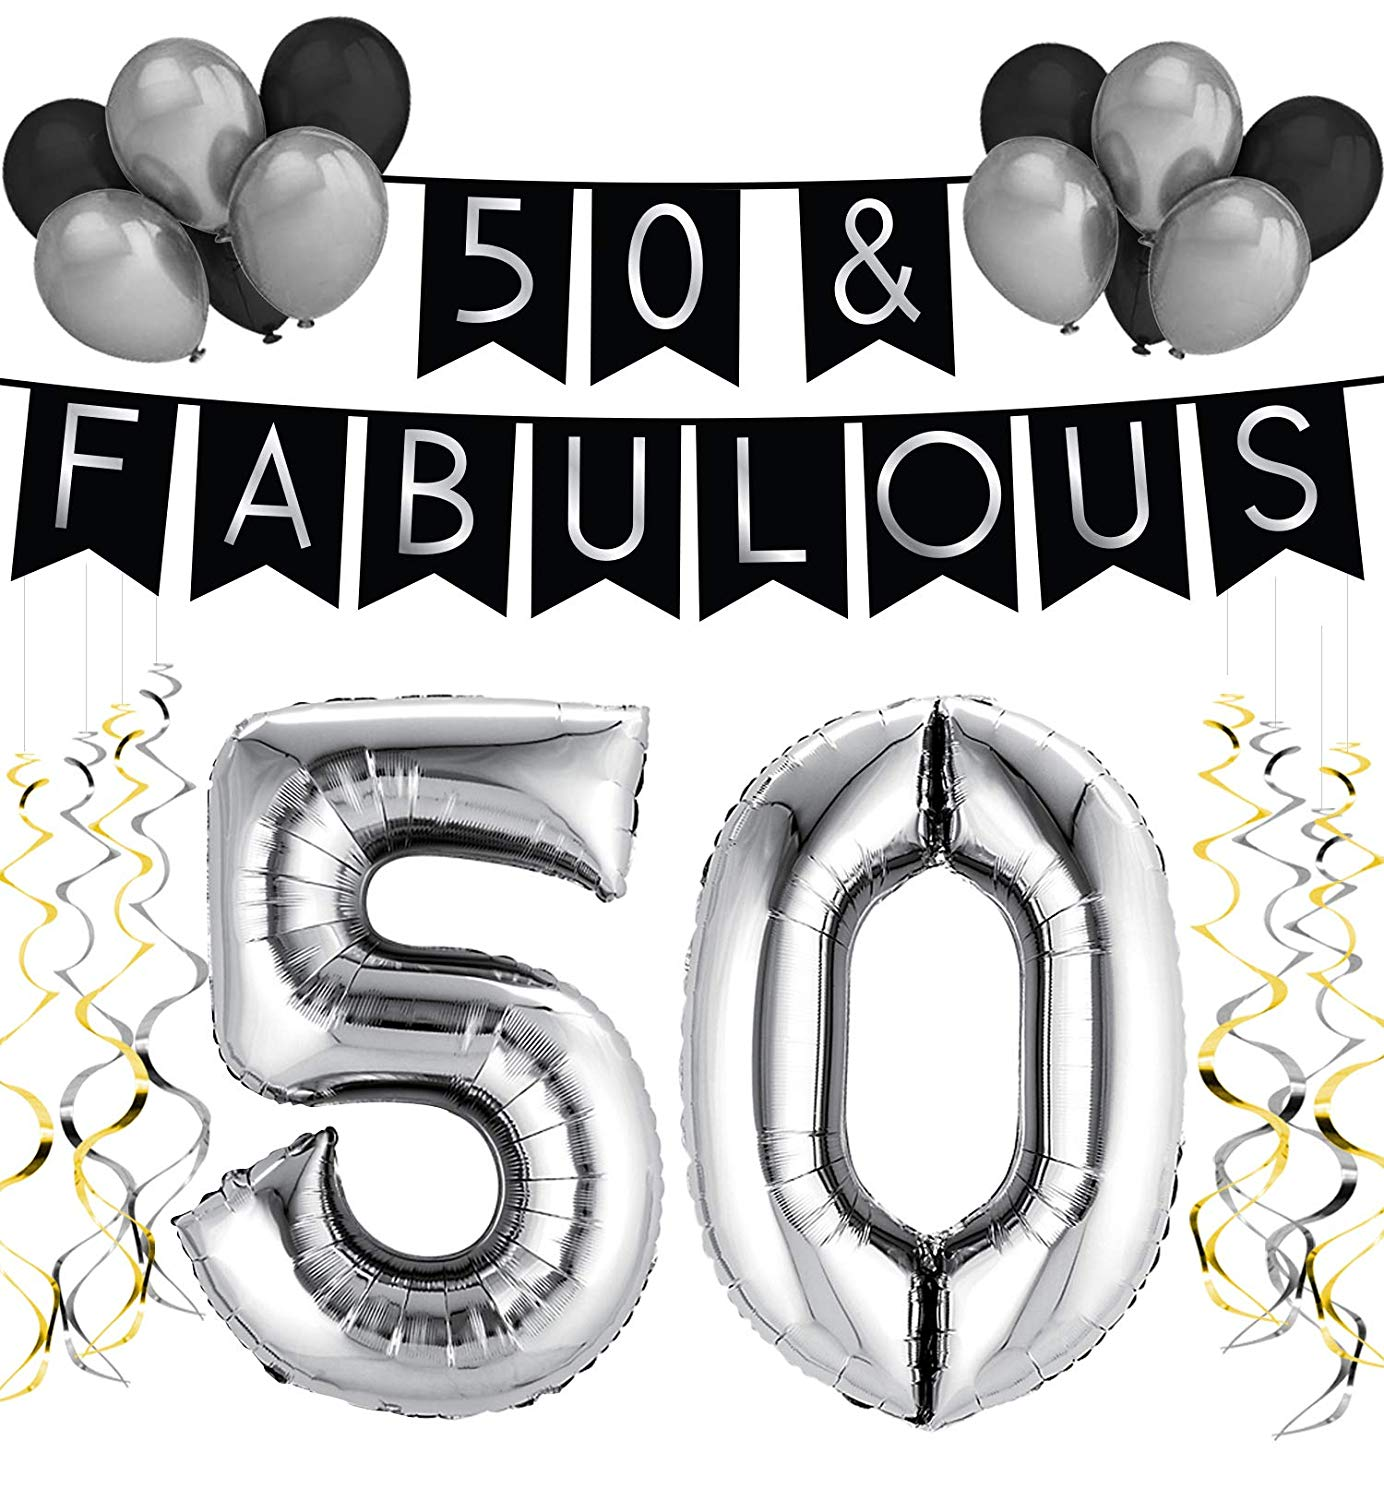 Get Quotations 50 Fabulous Birthday Party Pack Black Silver Happy Bunting Balloon